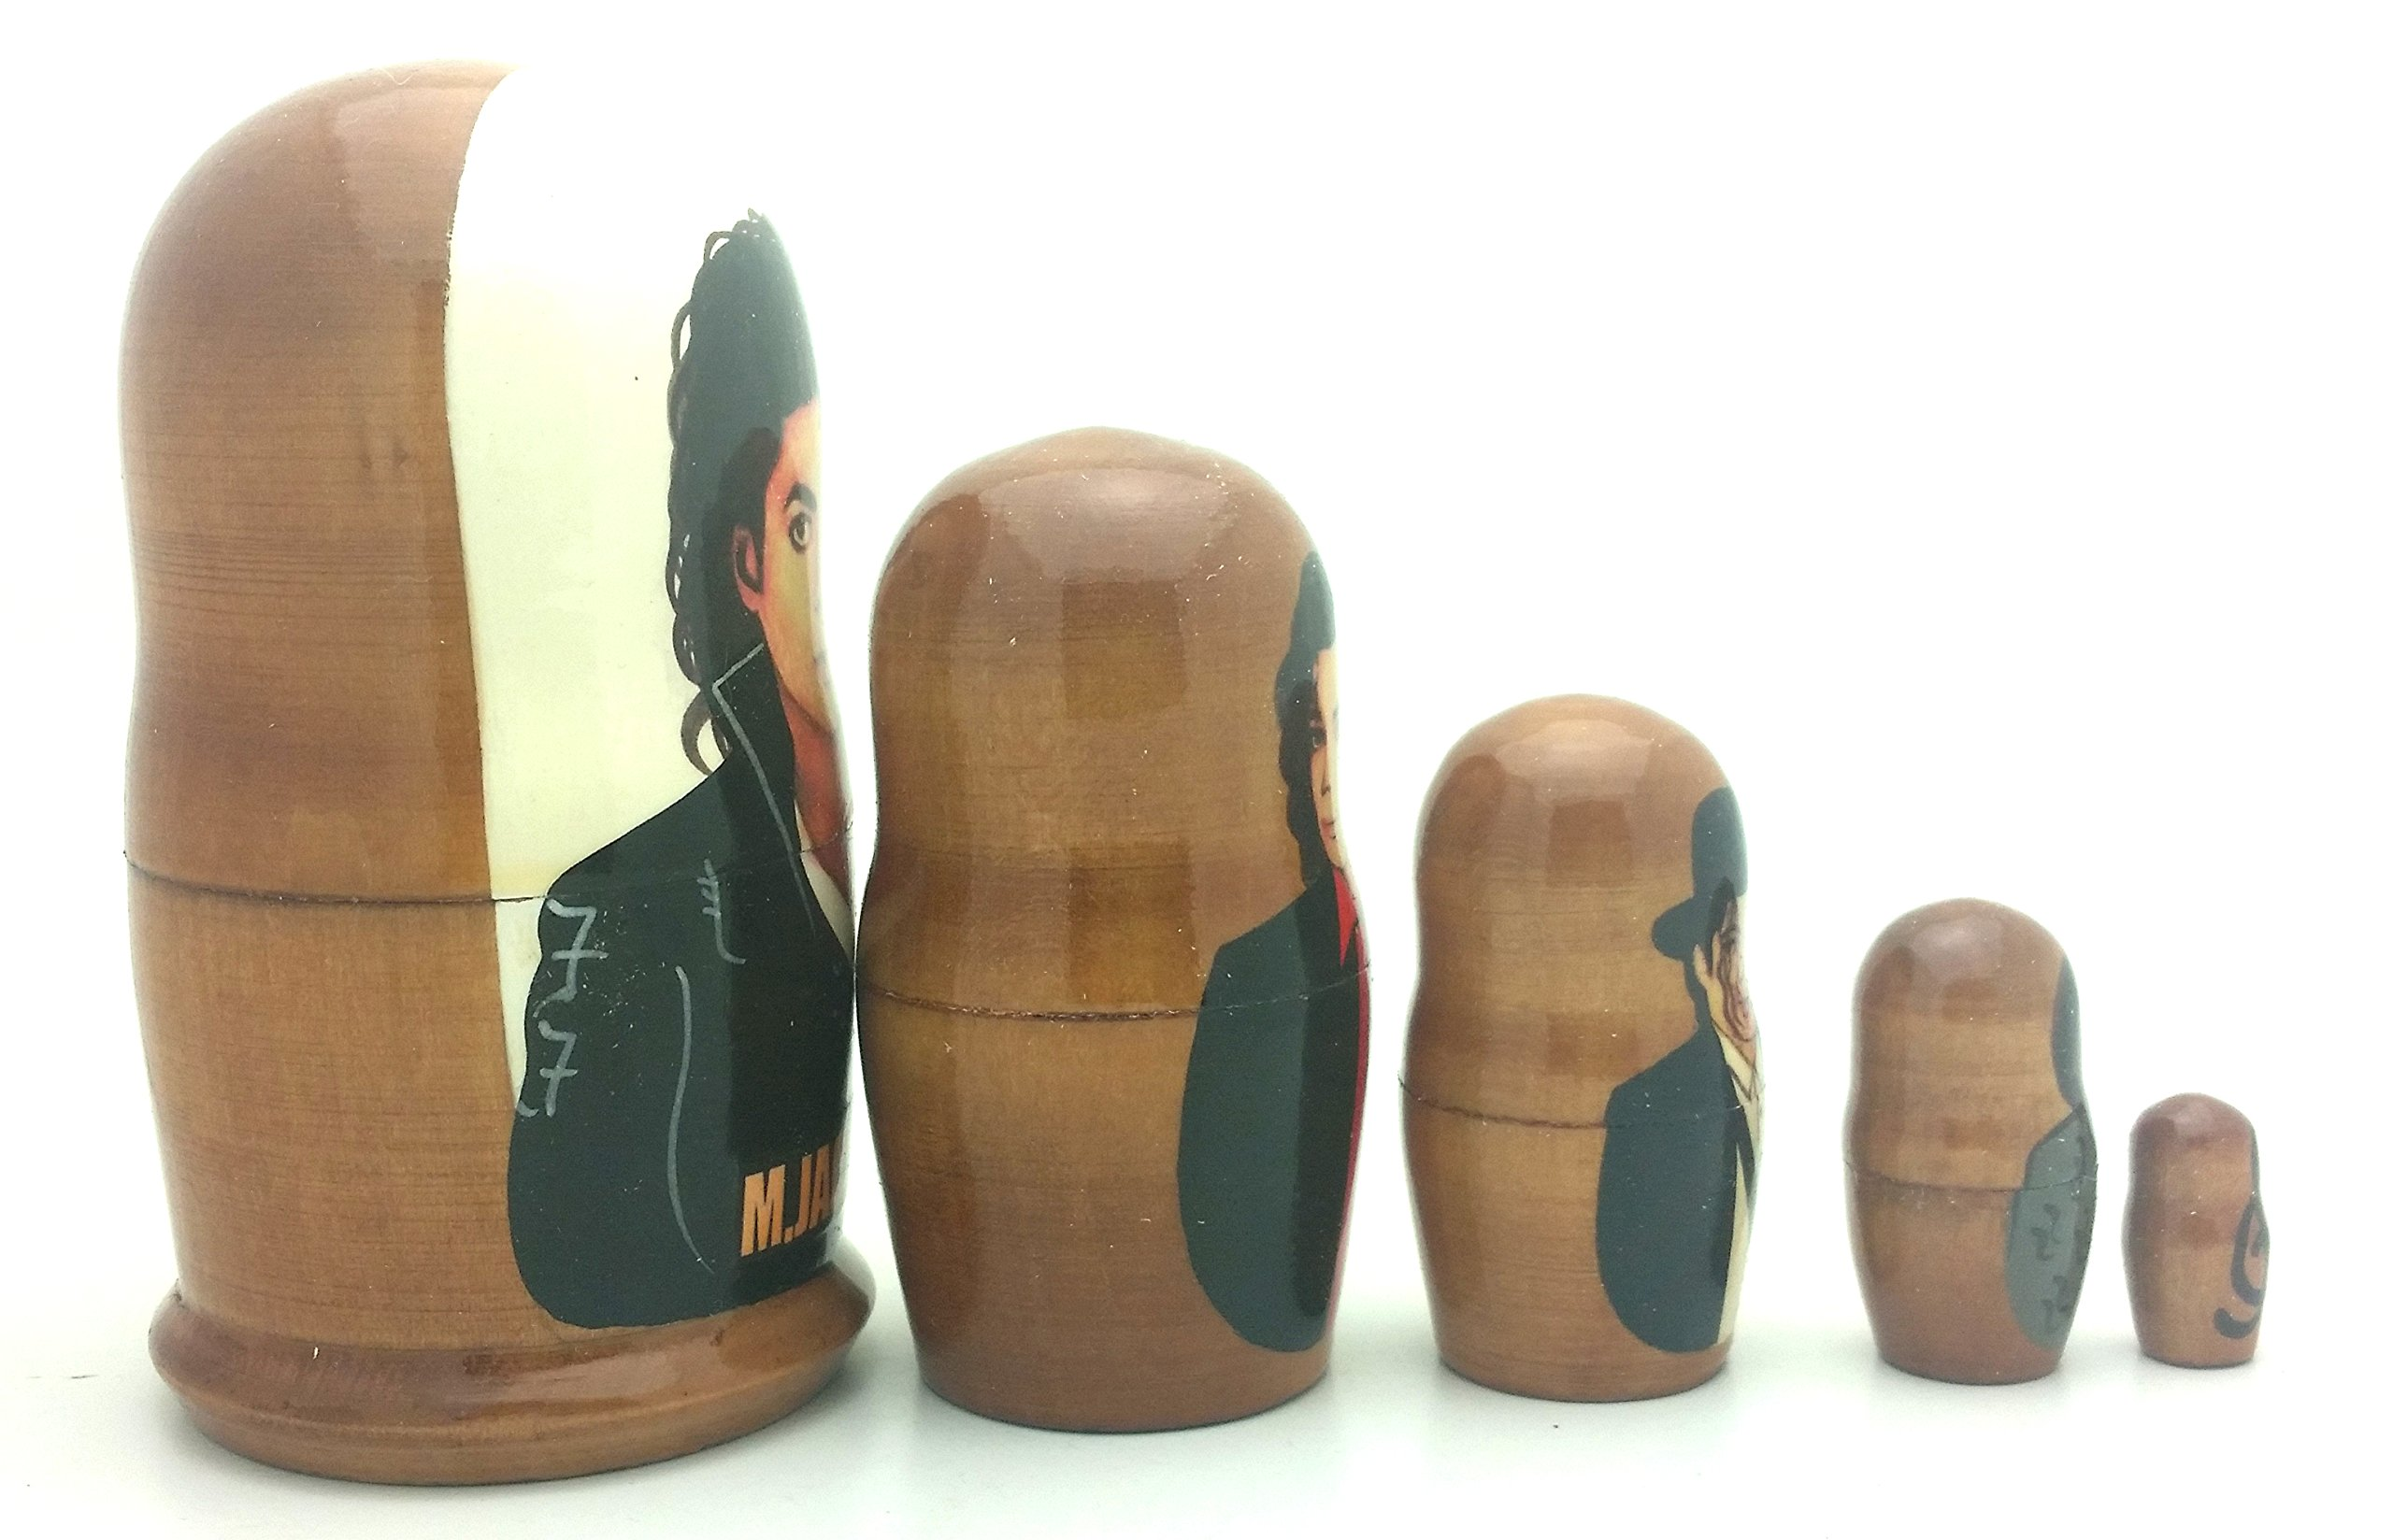 Michael Jackson BAD Russian Nesting dolls 5 piece DOLL Set 4'' Tall by BuyRussianGifts (Image #3)